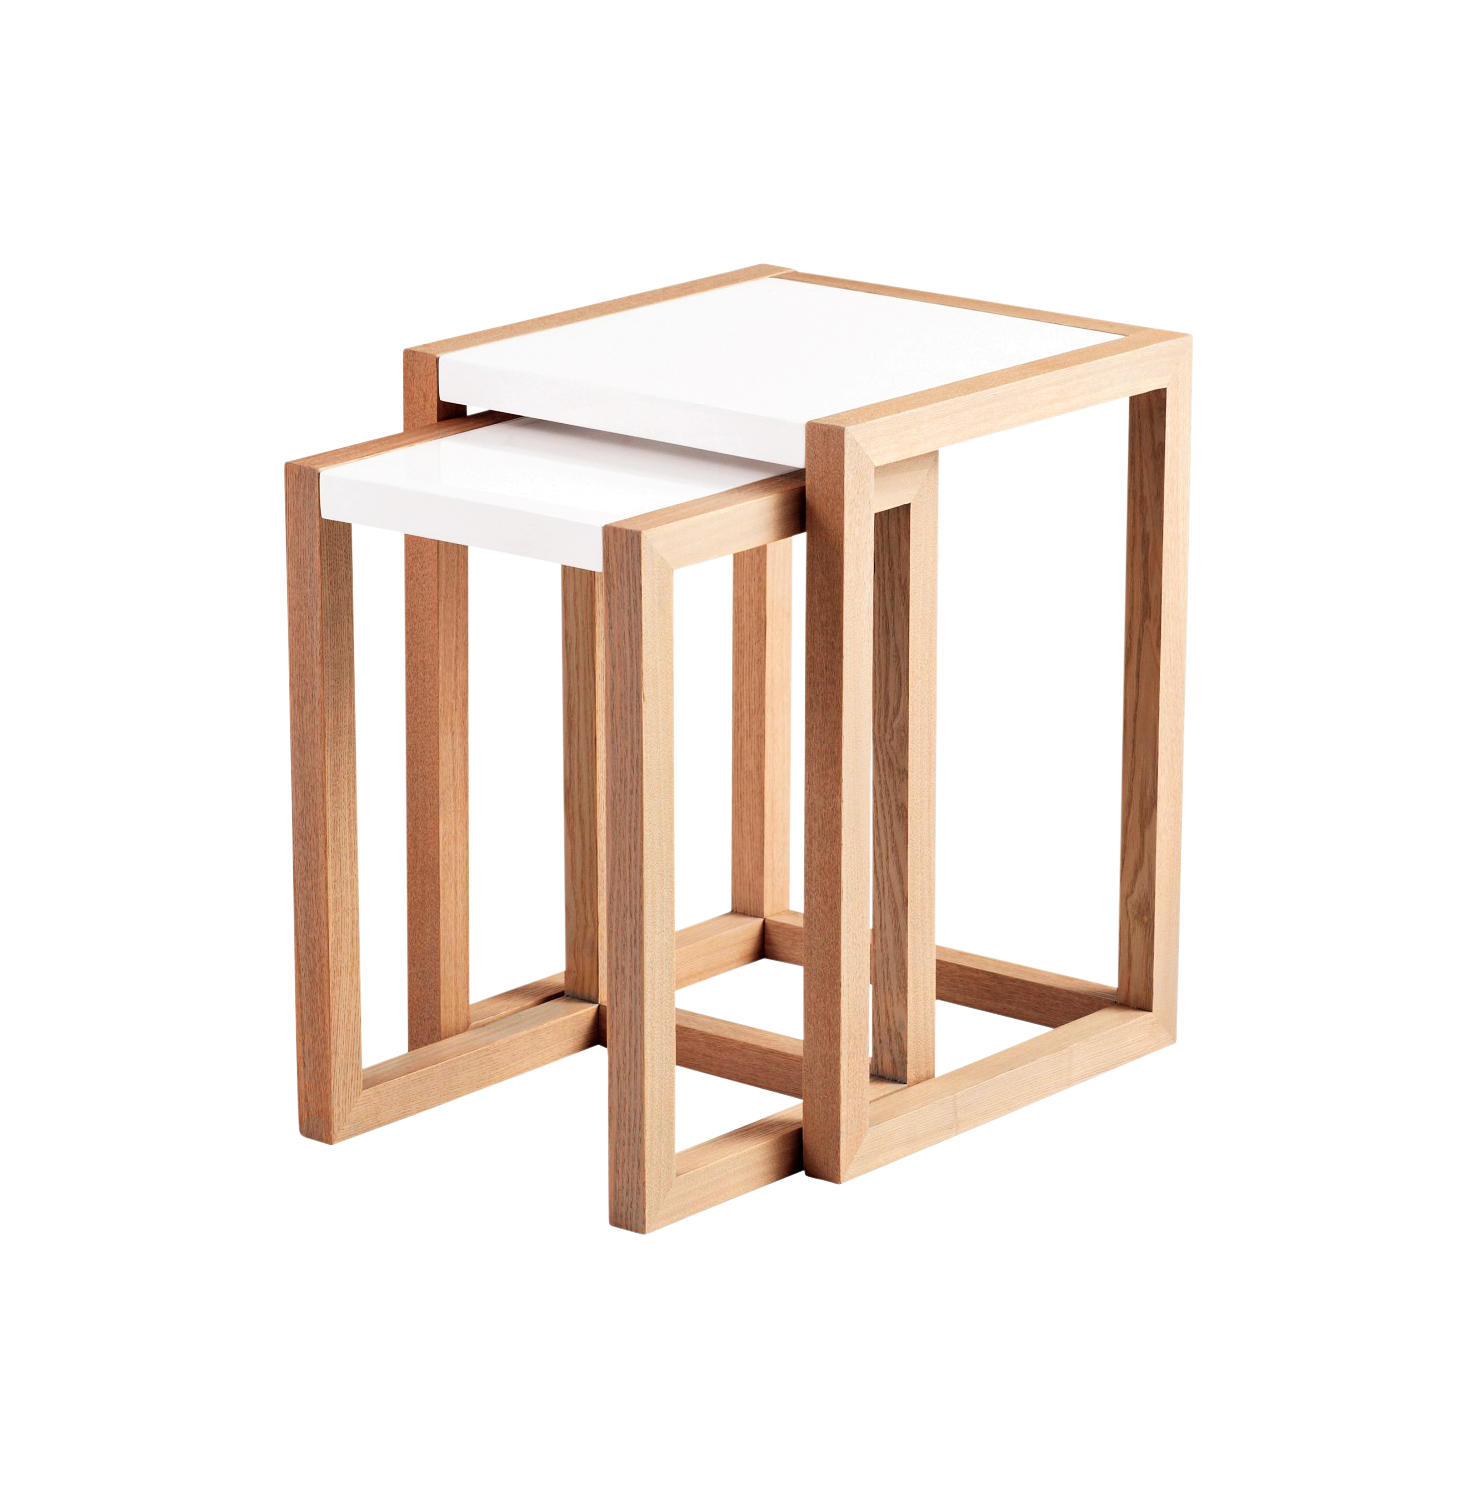 Beckett wood and white lacquer nesting tables